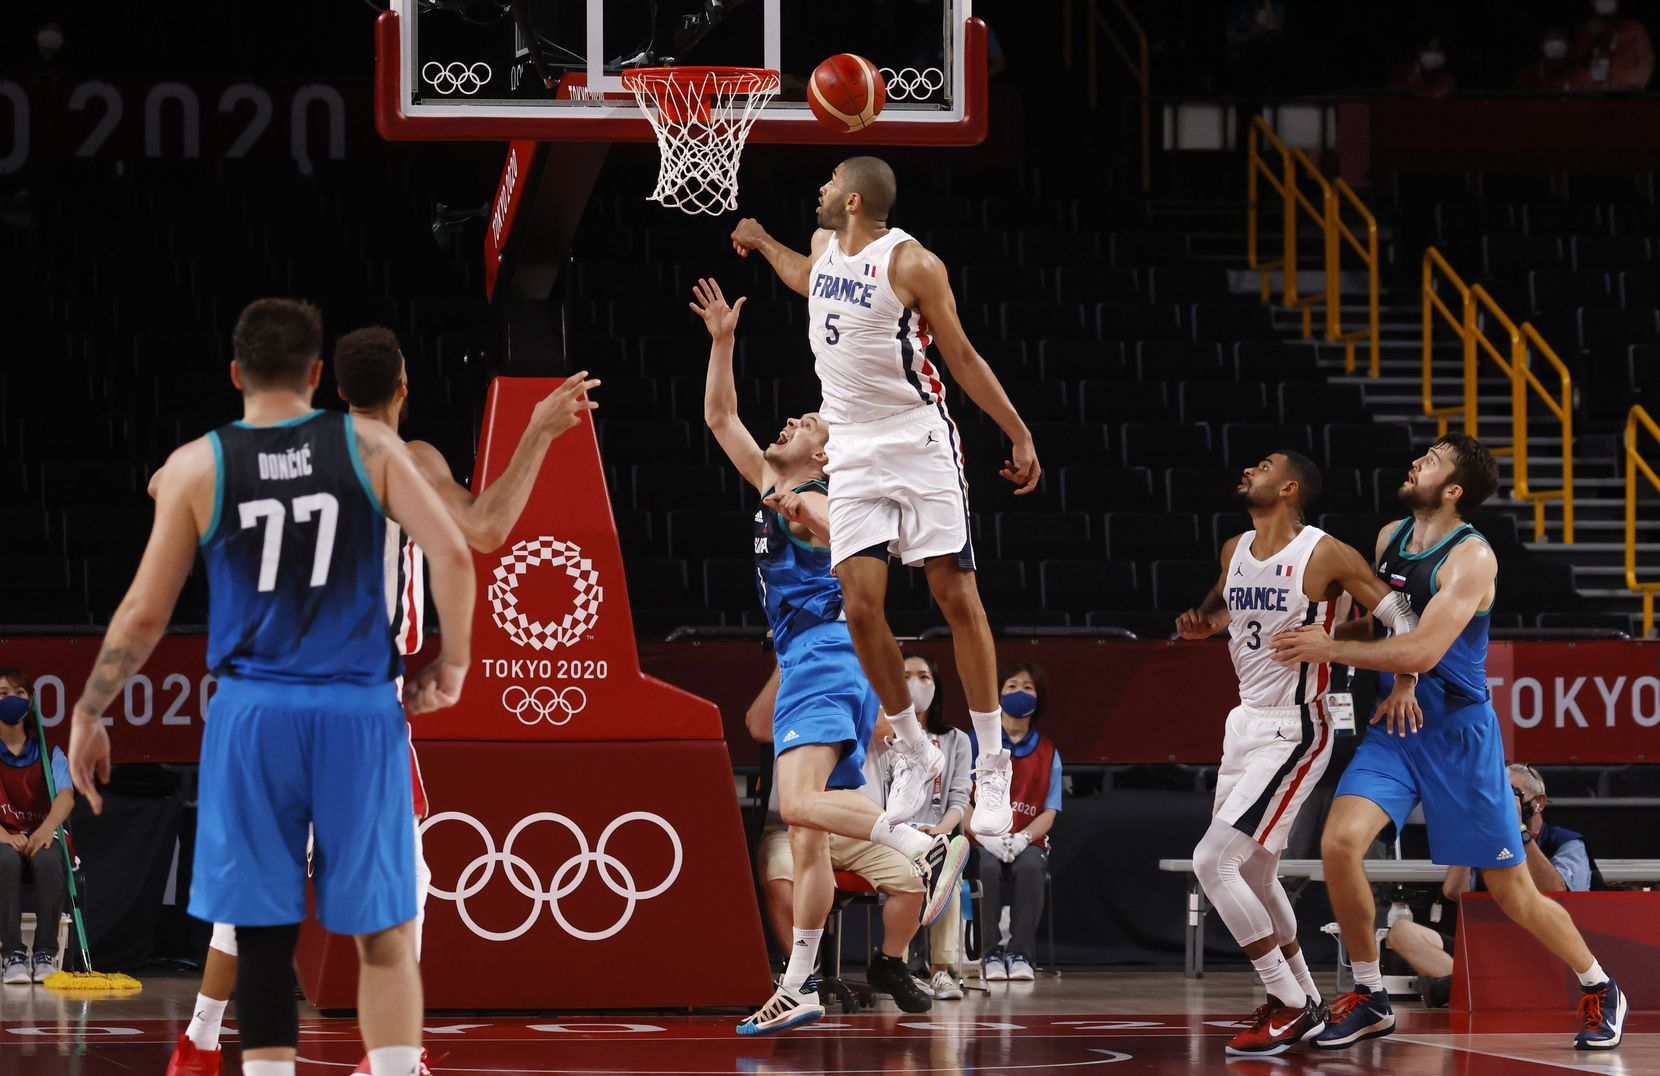 Slovenia's Klemenn Prepelic (7) last second shot is blocked by France's Nicolas Batum (5) at the end of the fourth quarter of play of a men's basketball semifinal at the postponed 2020 Tokyo Olympics at Saitama Super Arena, on Thursday, August 5, 2021, in Saitama, Japan. France defeated Slovenia 90-89. Slovenia will play in the bronze medal game. (Vernon Bryant/The Dallas Morning News)